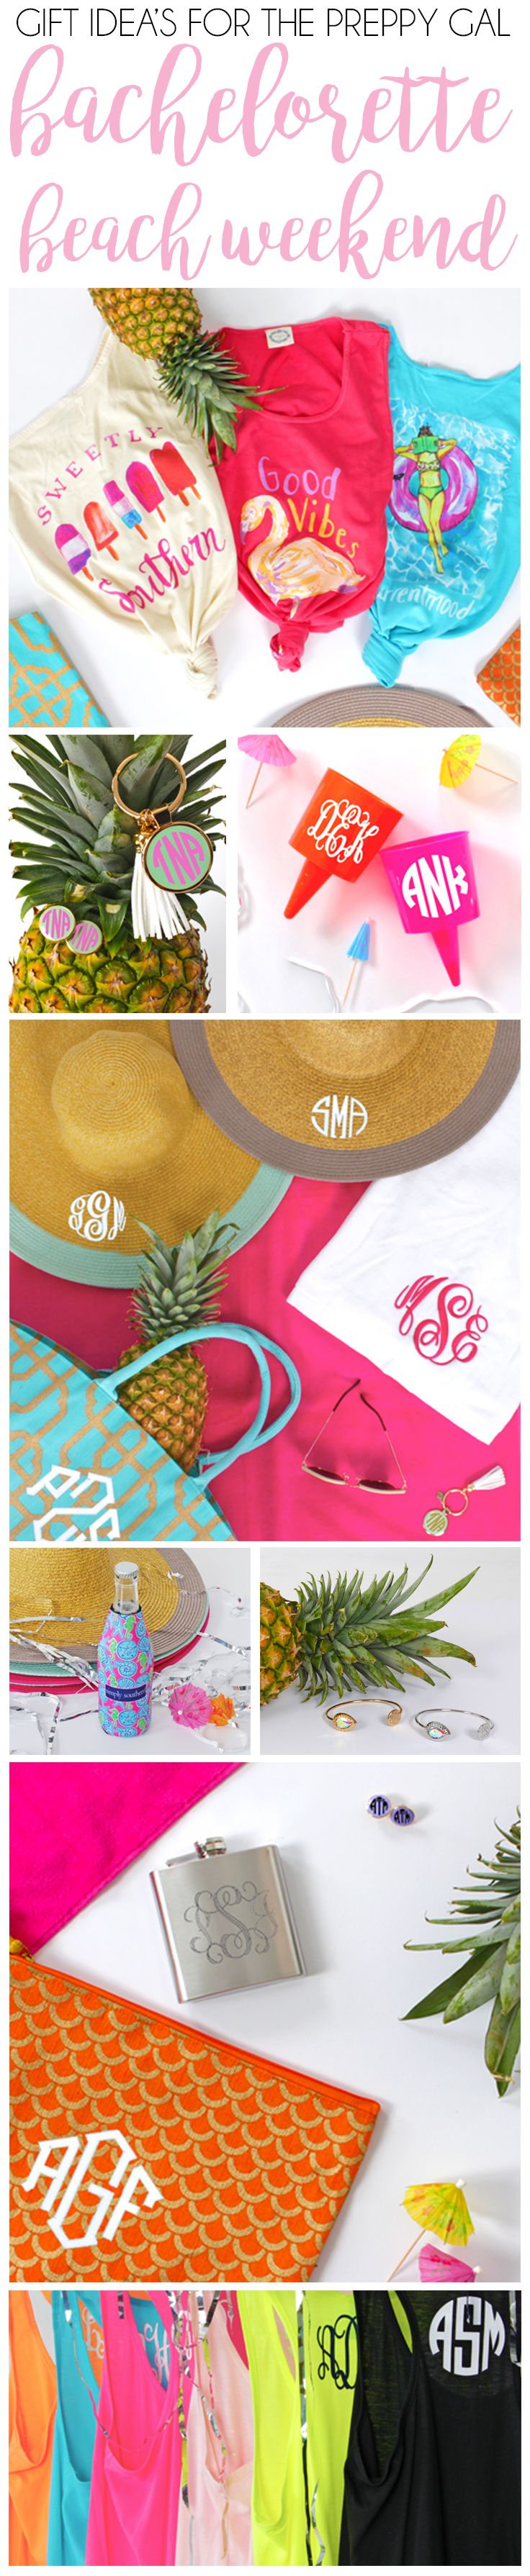 Planning a bachelorette trip? Check out these adorable personalized goodies from Marleylilly.com and Lakesidecotton.com that the bridal party is sure to love! #monogram #monograms #monogrammed #wedding #bachelorette #party #summer #beach #bride #preppy